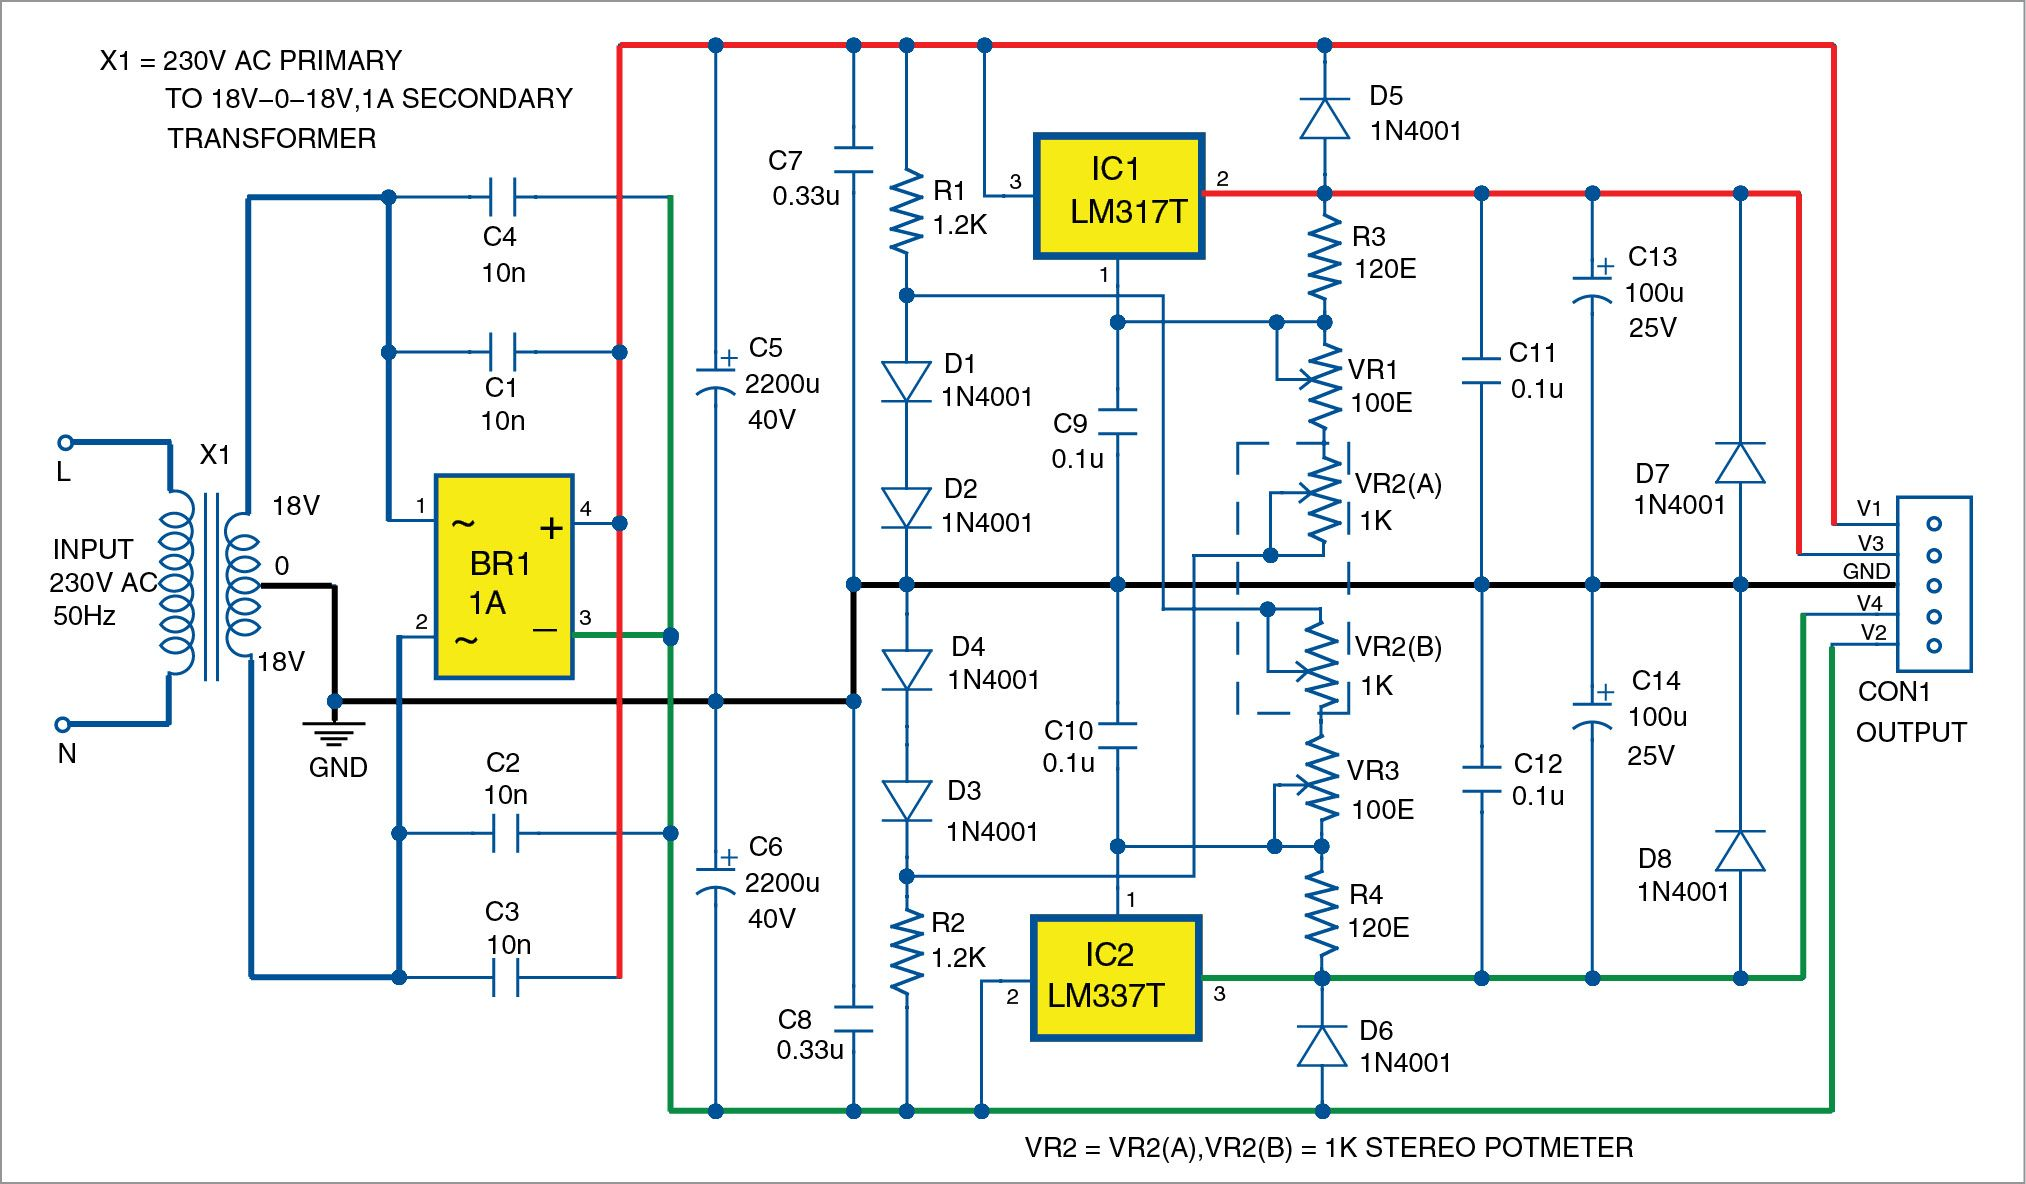 Bipolar Power Supply With Adjustable Regulators In 2018 Escha Lm317 Voltage Regulator Schematic Lm317t And Lm337t Ics Are Well Known Low Cost Capable Of Delivering Up To 15a Current Output Dissipation